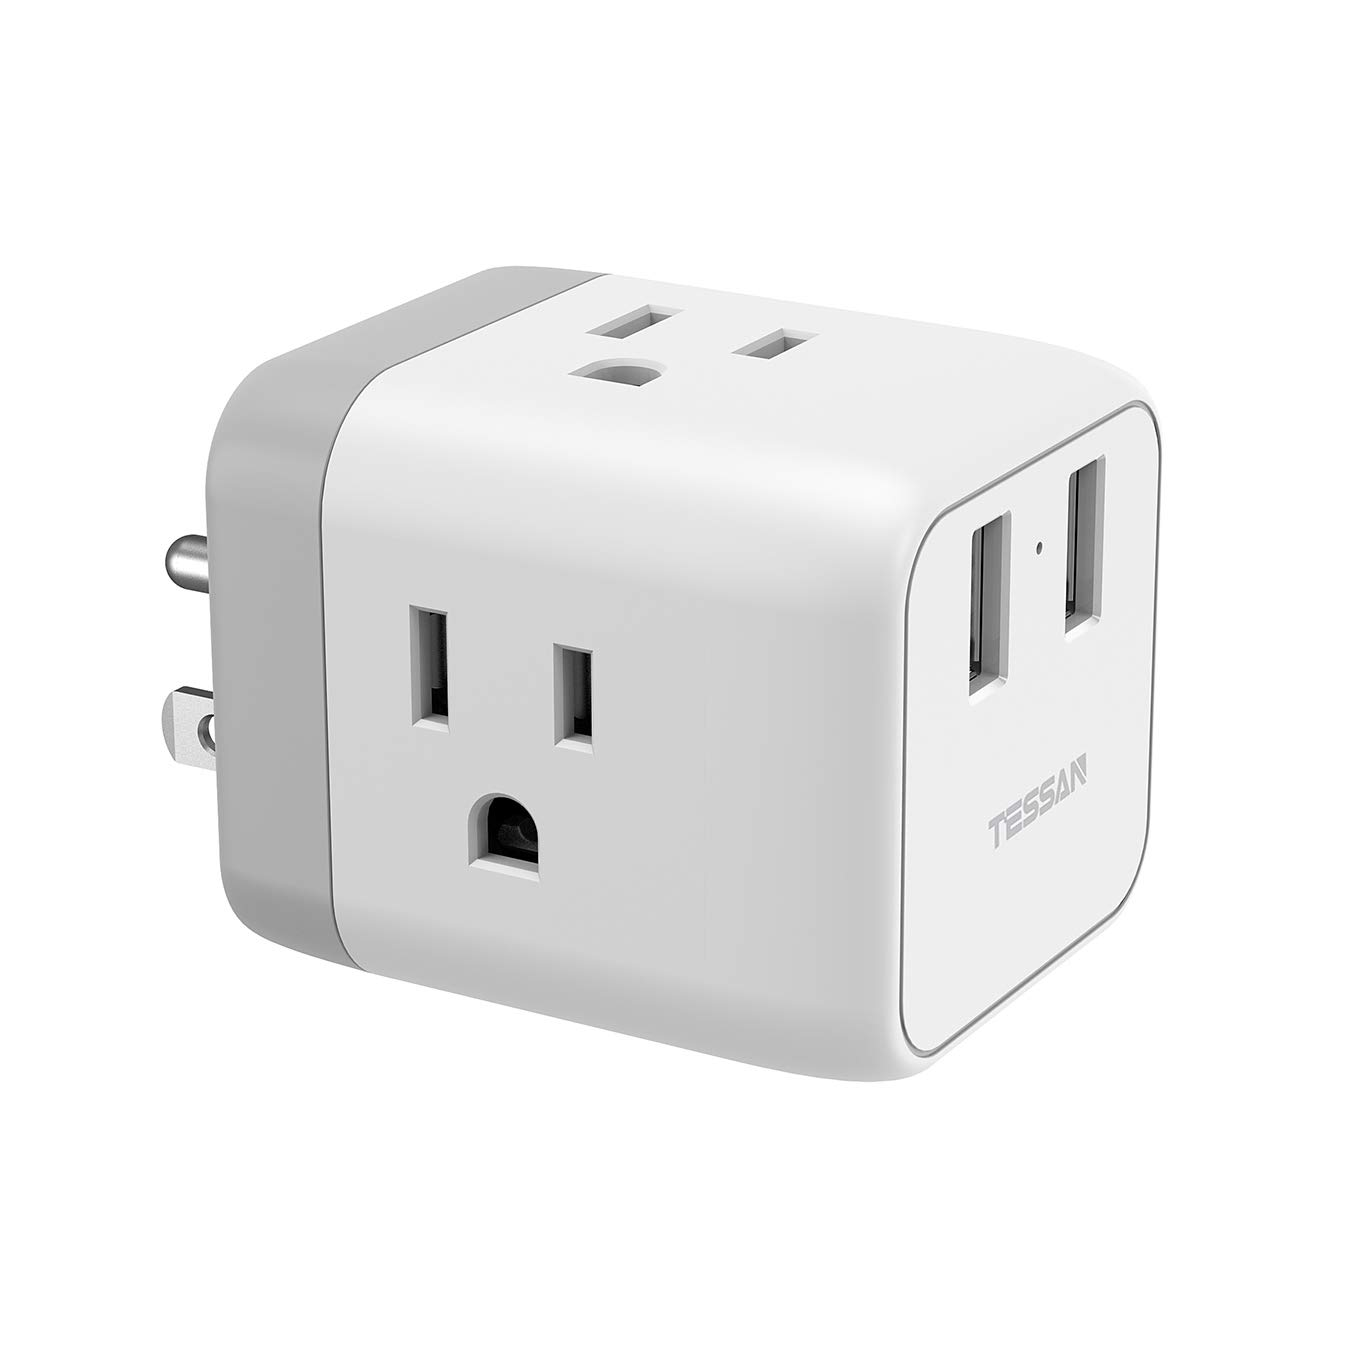 Multi Plug Outlet Extender with 2 USB Wall Charger, Travel Power Strip Extension for Cruise Ship Accessories, Charging Cube 3 Way Plug Wall Adapter Tap Multiple Outlet Splitter